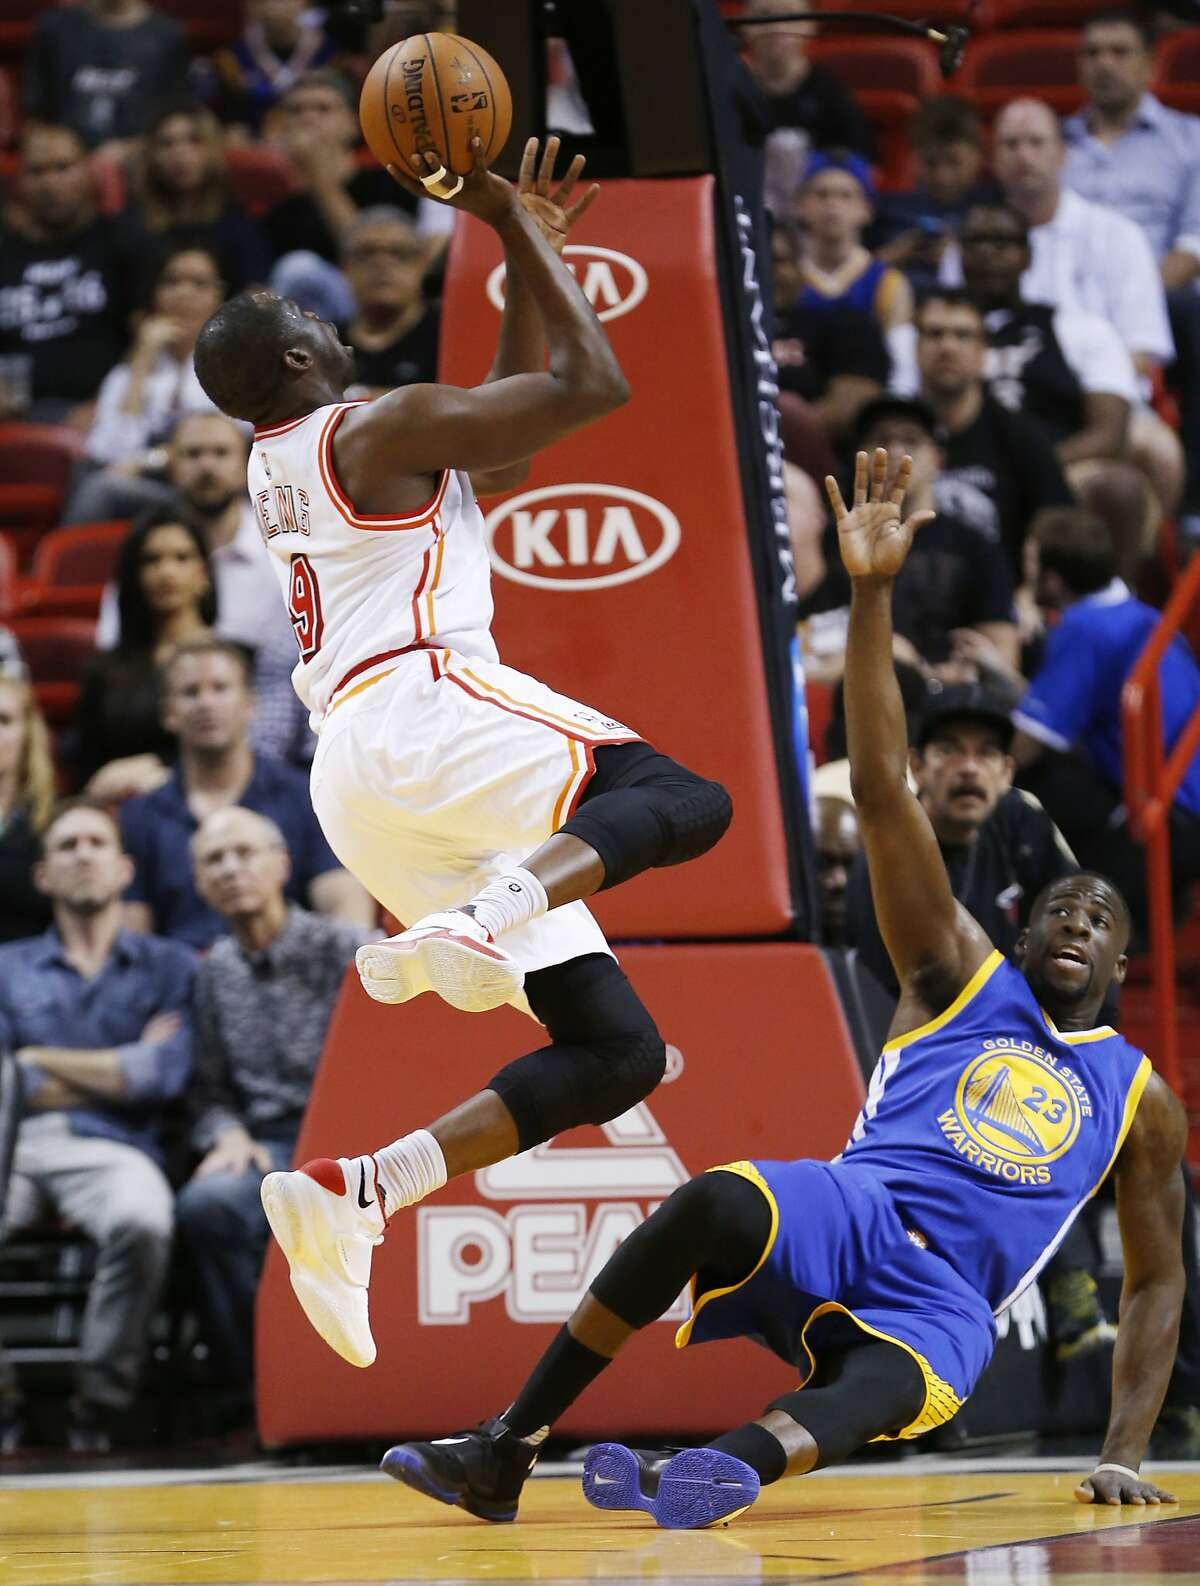 Heat forward Luol Deng (9) shoots as Warriors forward Draymond Green falls during the first half Wednesday at Miami.